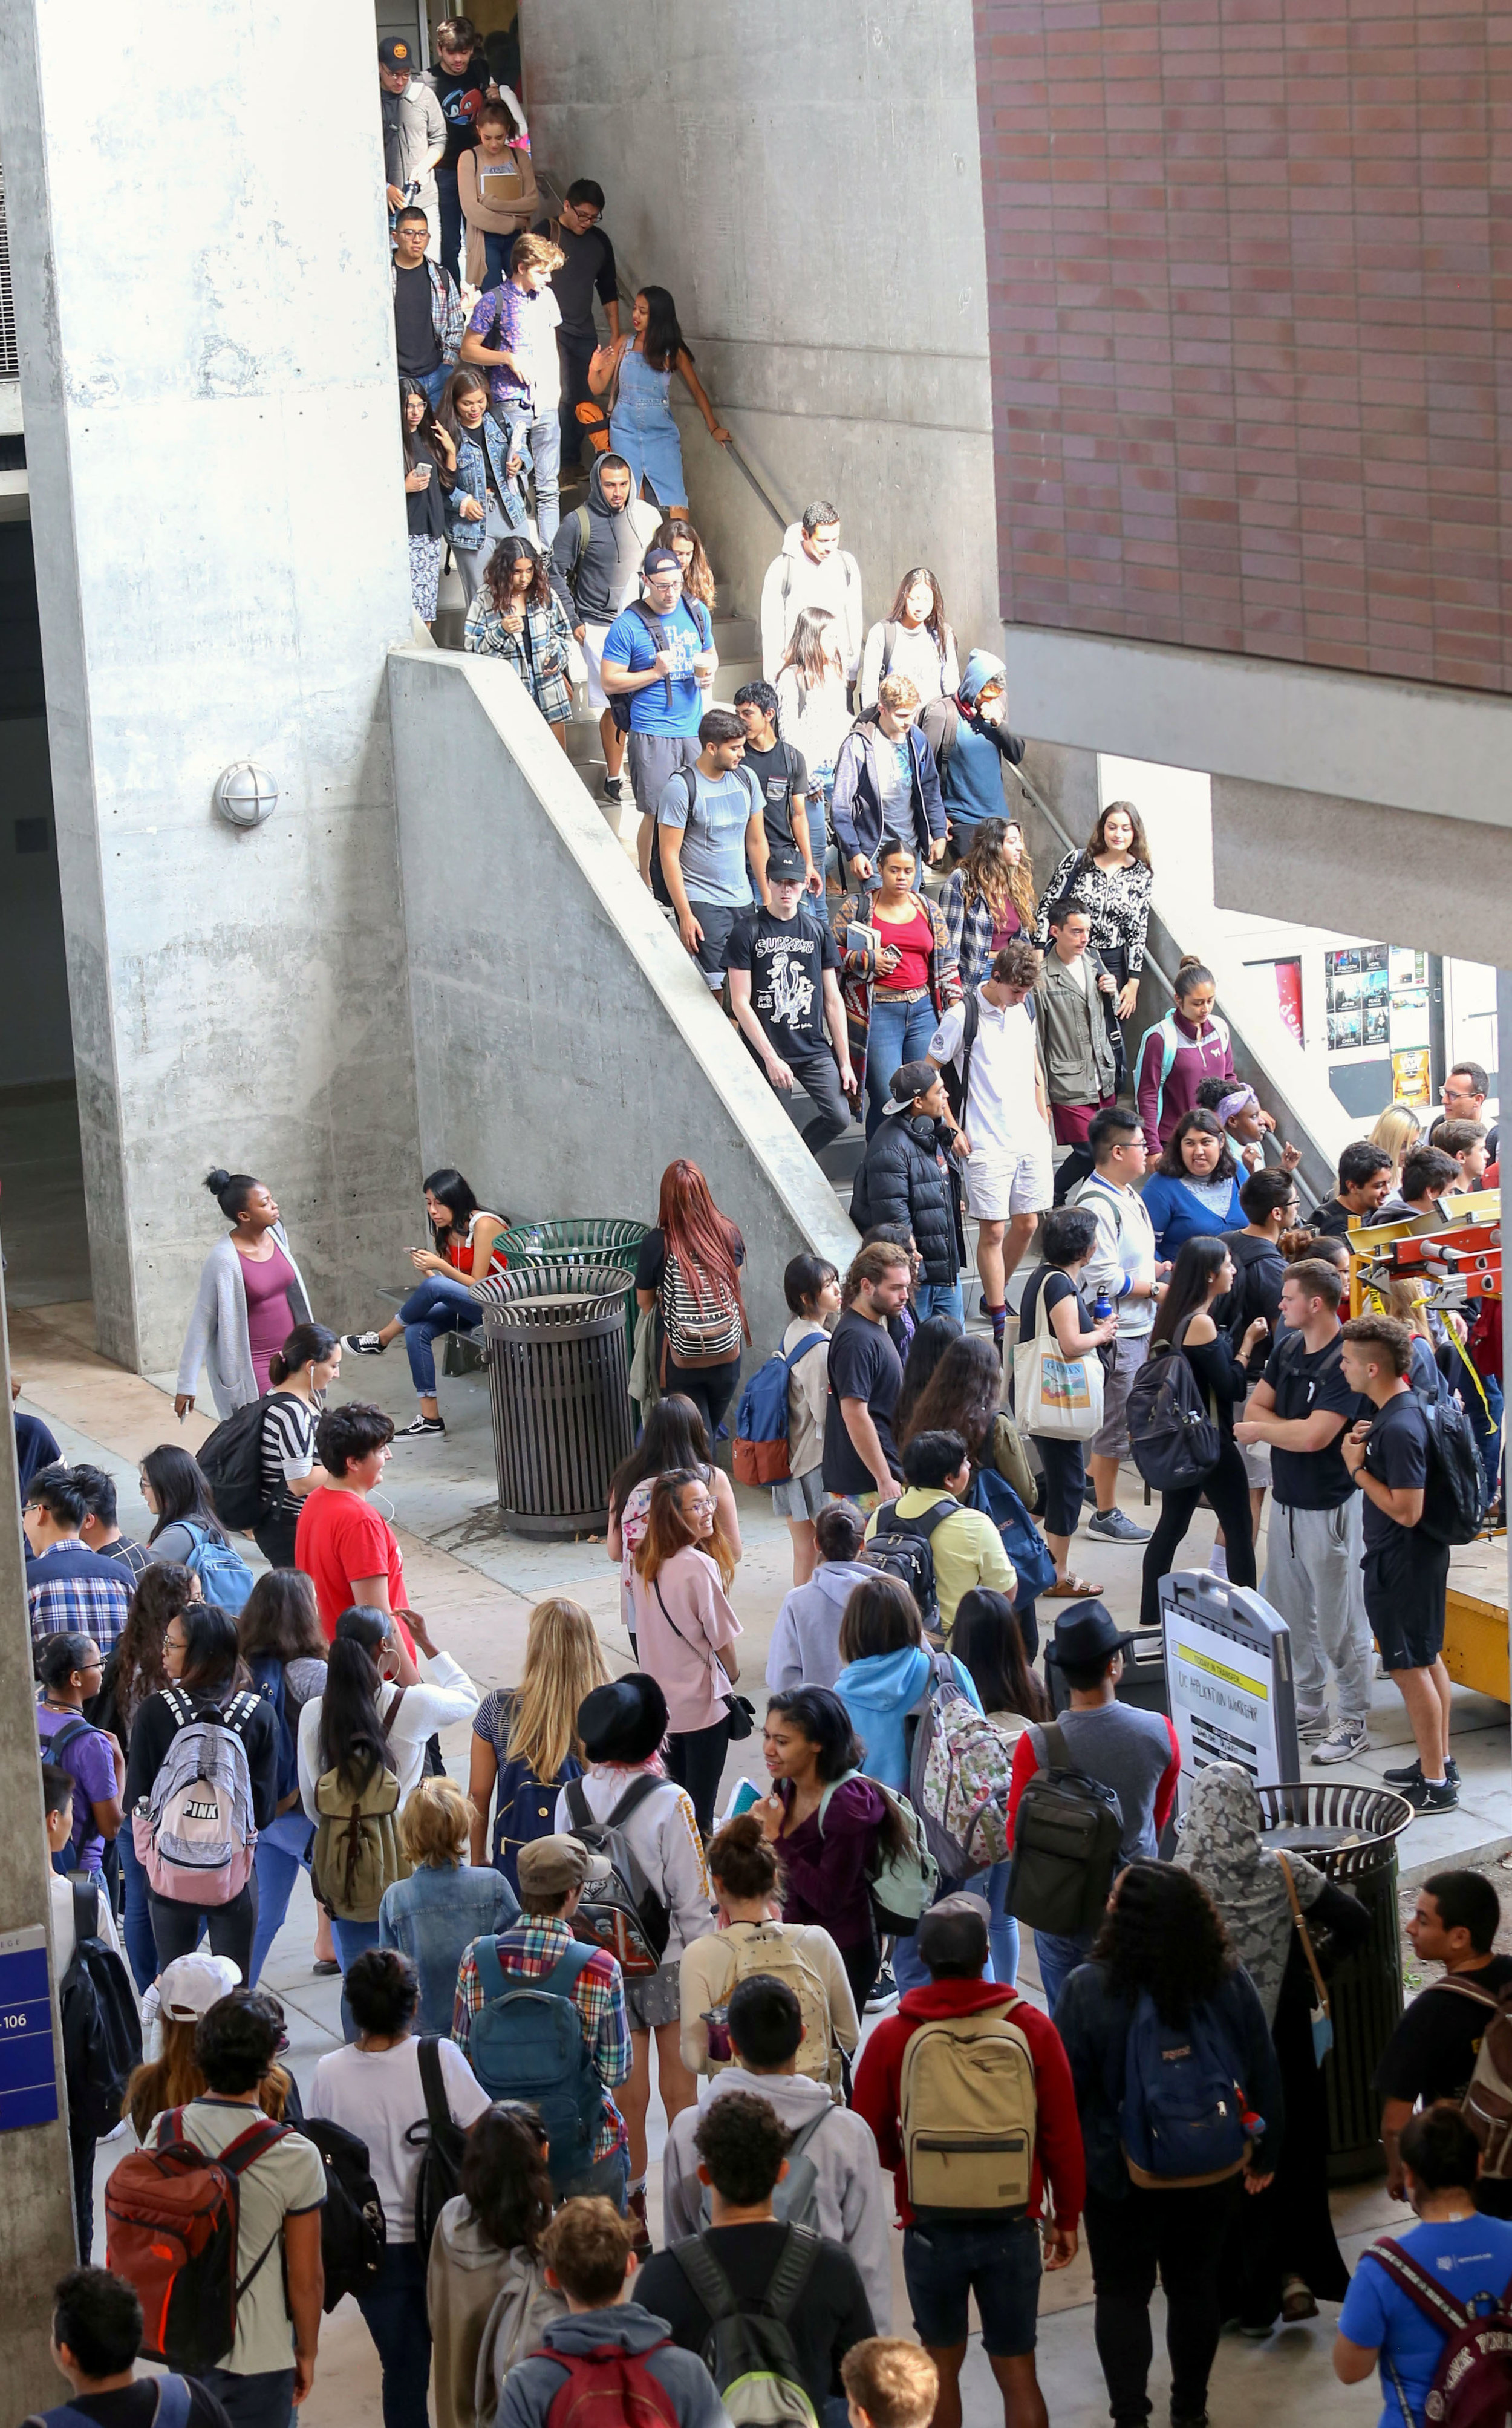 Students evacuate Santa Monica College's History building after an alarm sounded informing students to leave their classroom for The Great California Shakedown drill in Santa Monica, Calif on Thursday, October 19th 2017. (Photo by: Thane Fernandes)